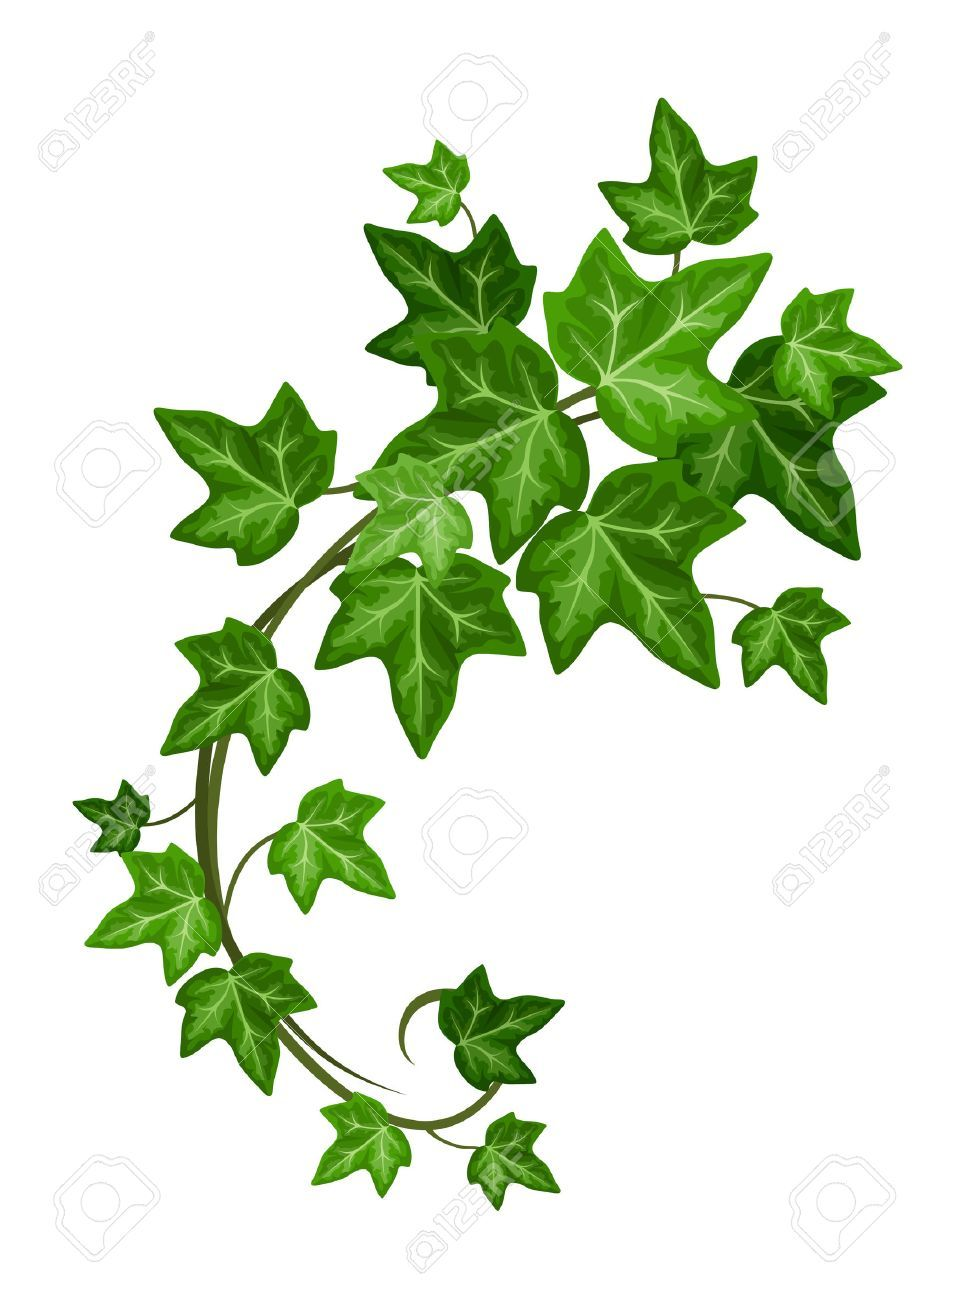 975x1300 image result for ivy plant illustration birthday in ivy